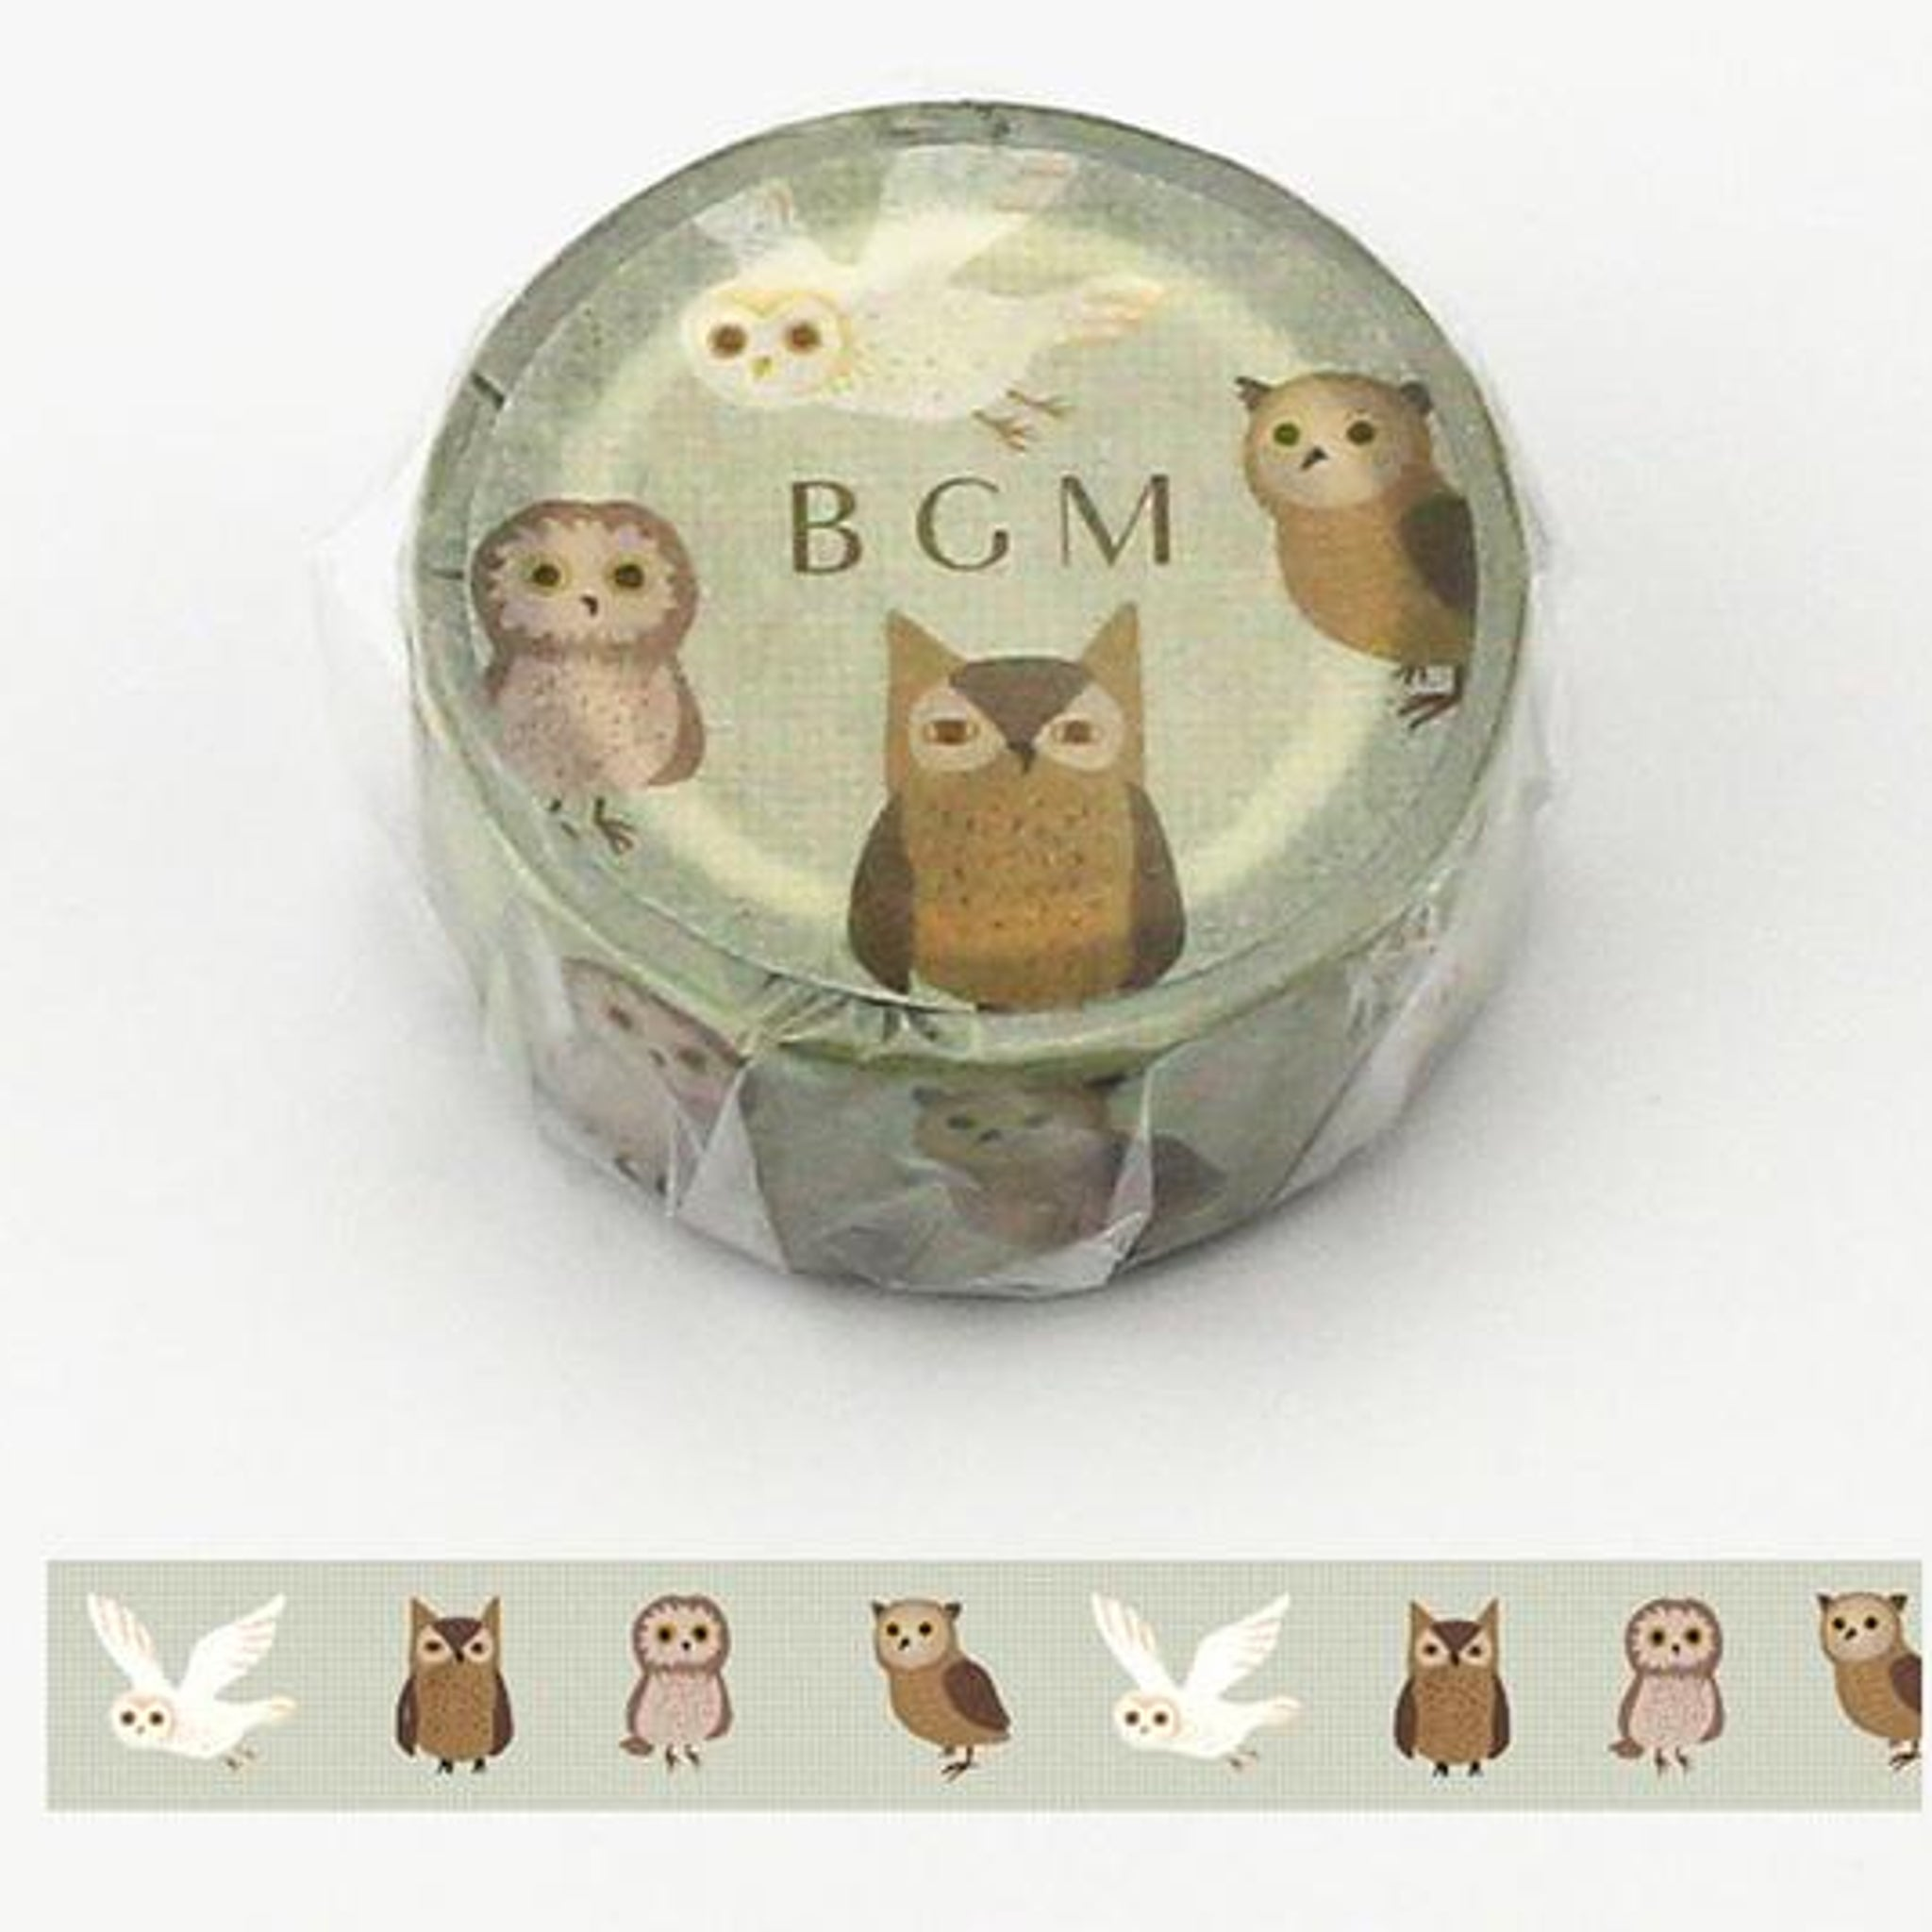 BGM Horned Owl Washi Tape